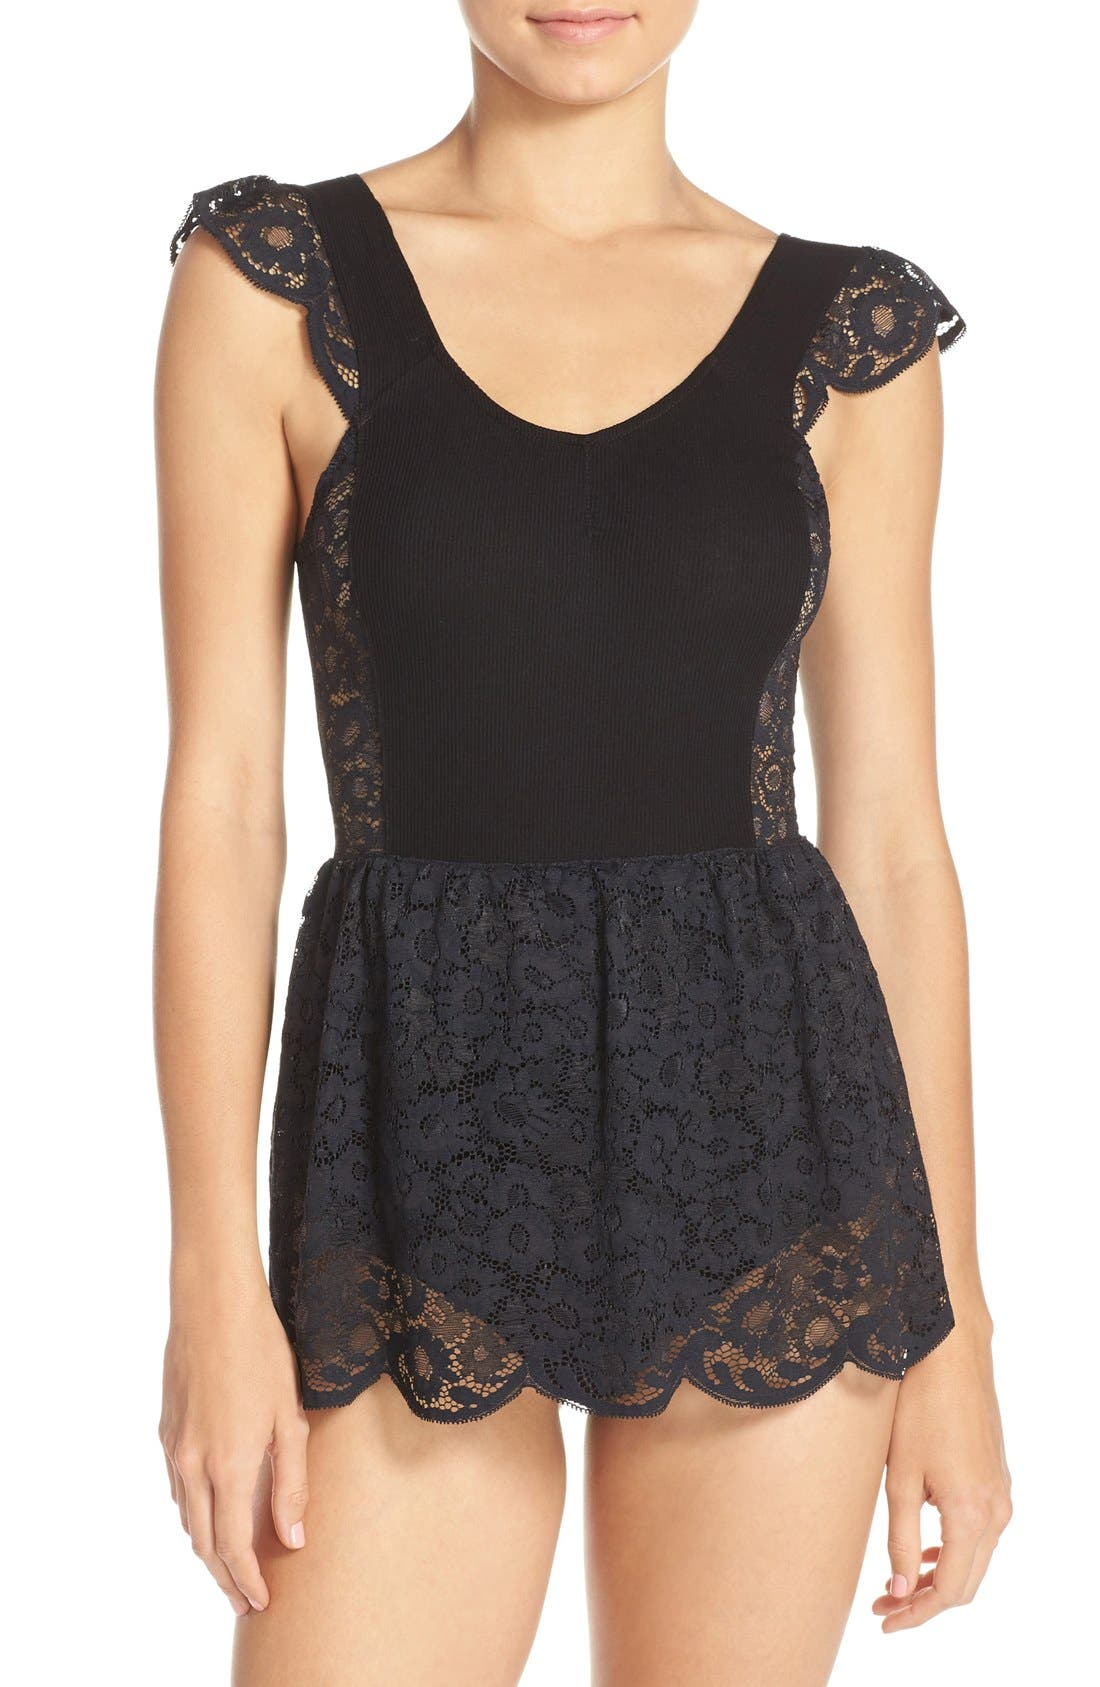 Main Image - For Love & Lemons 'Daisy' Lace Skirted Bodysuit